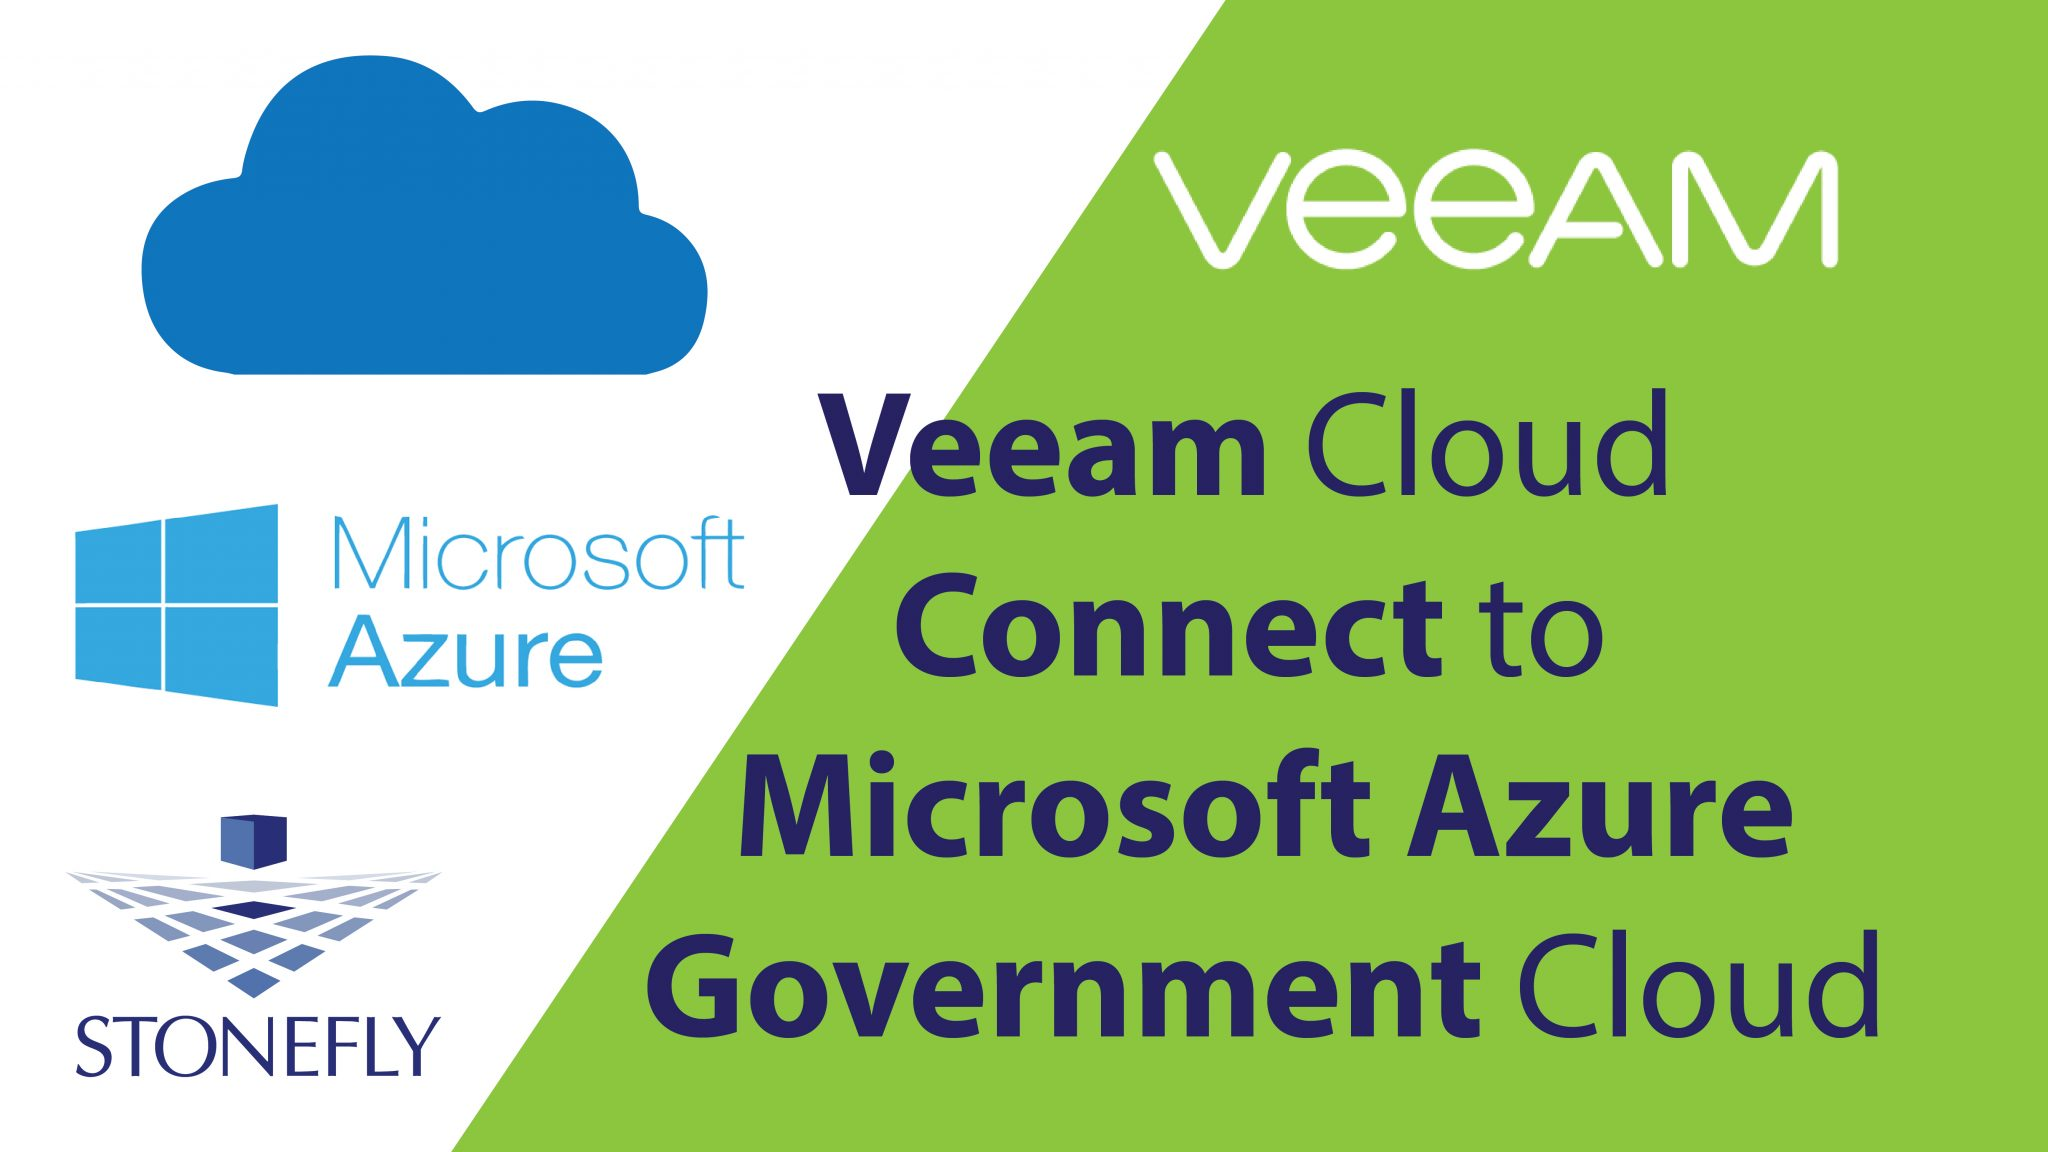 SVeeam Cloud Connect to Microsoft Azure Government Cloud